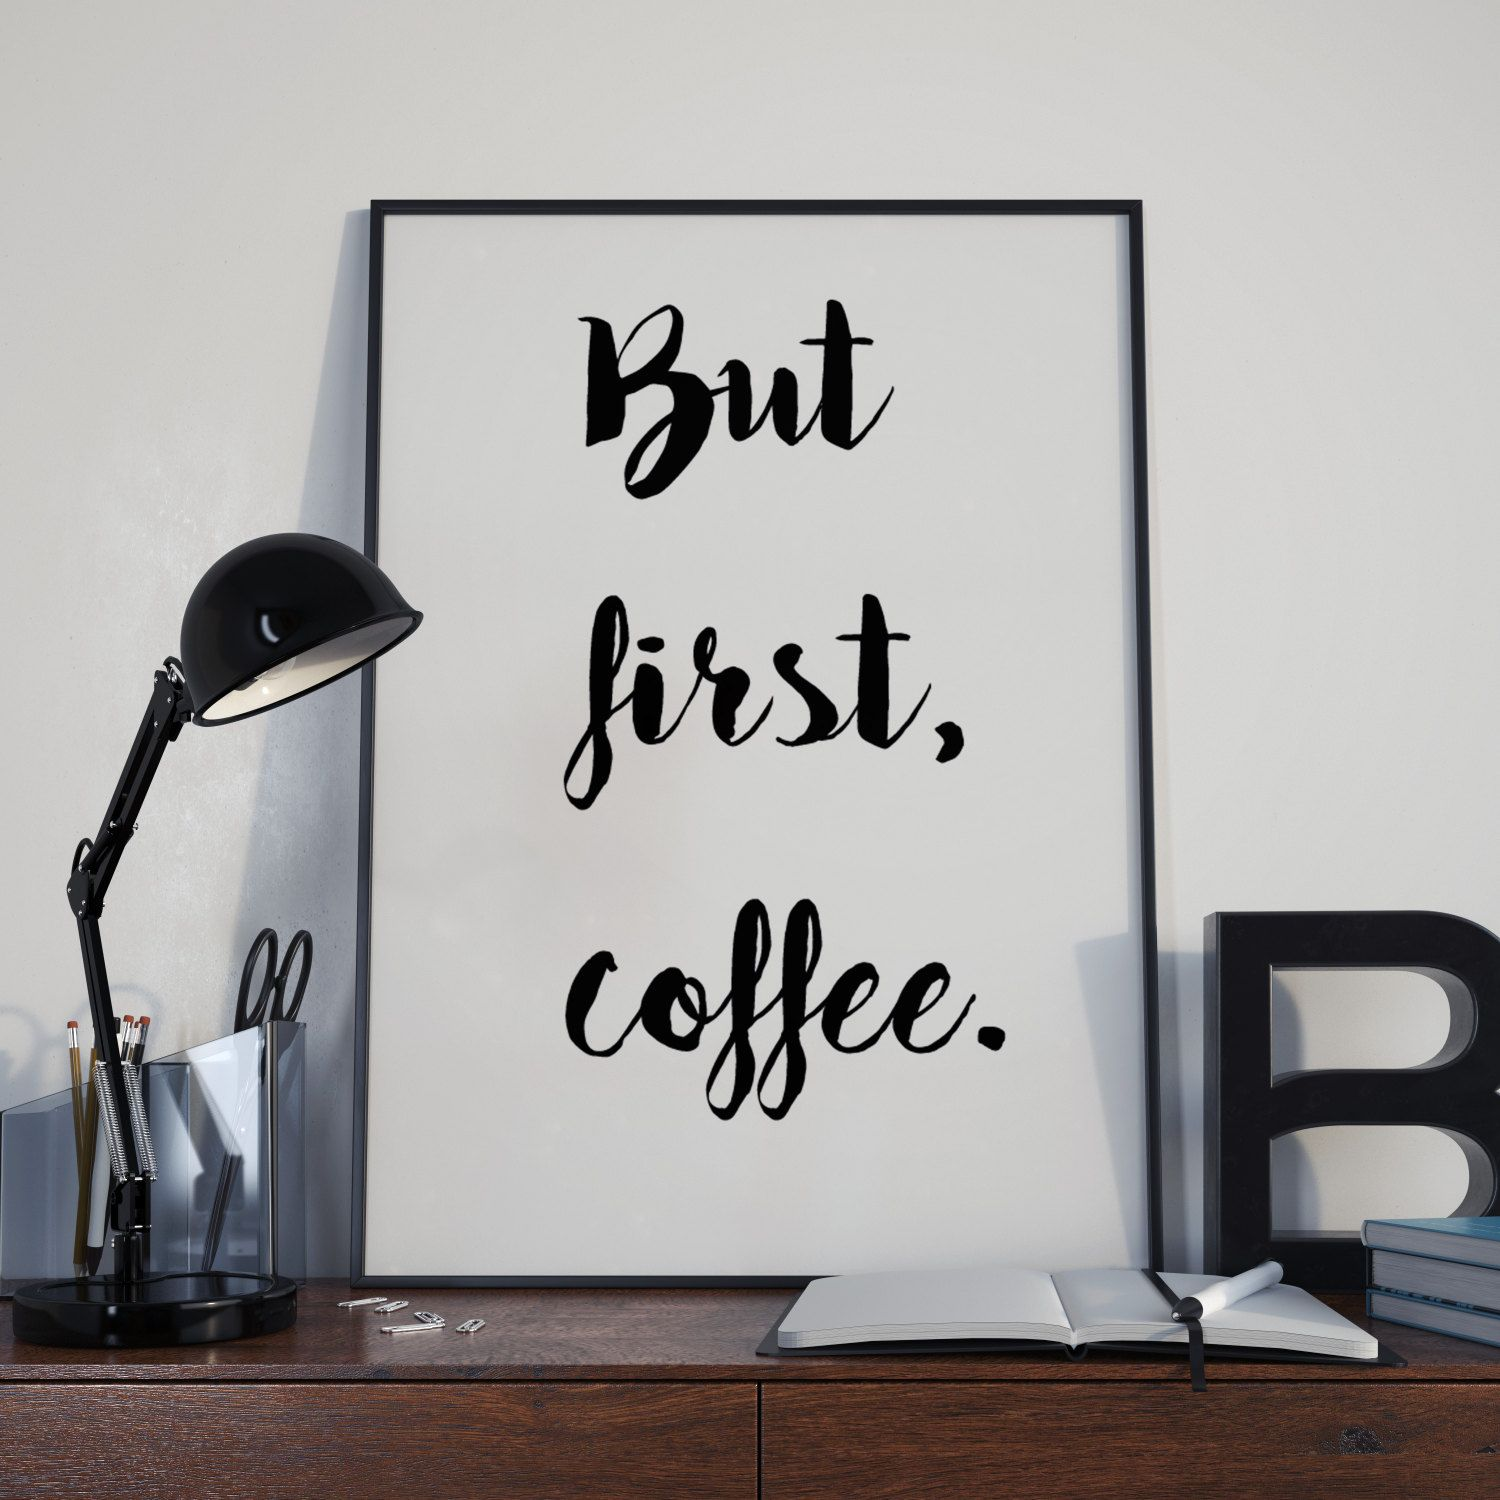 But first coffee, Printable art, Inspirational quotes to ...